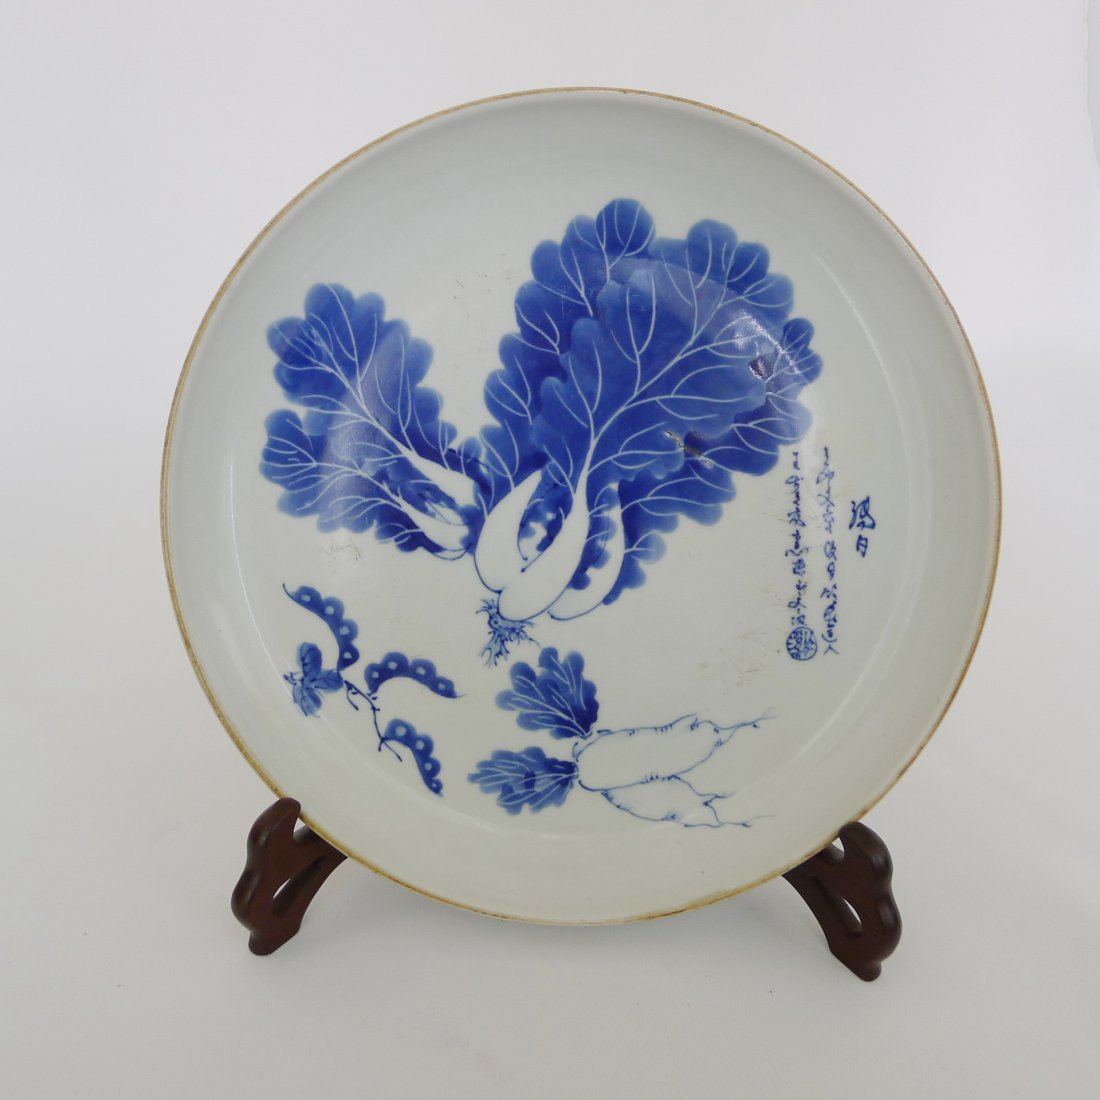 THE BLUE AND WHITE CABBAGE RADISH PLATE